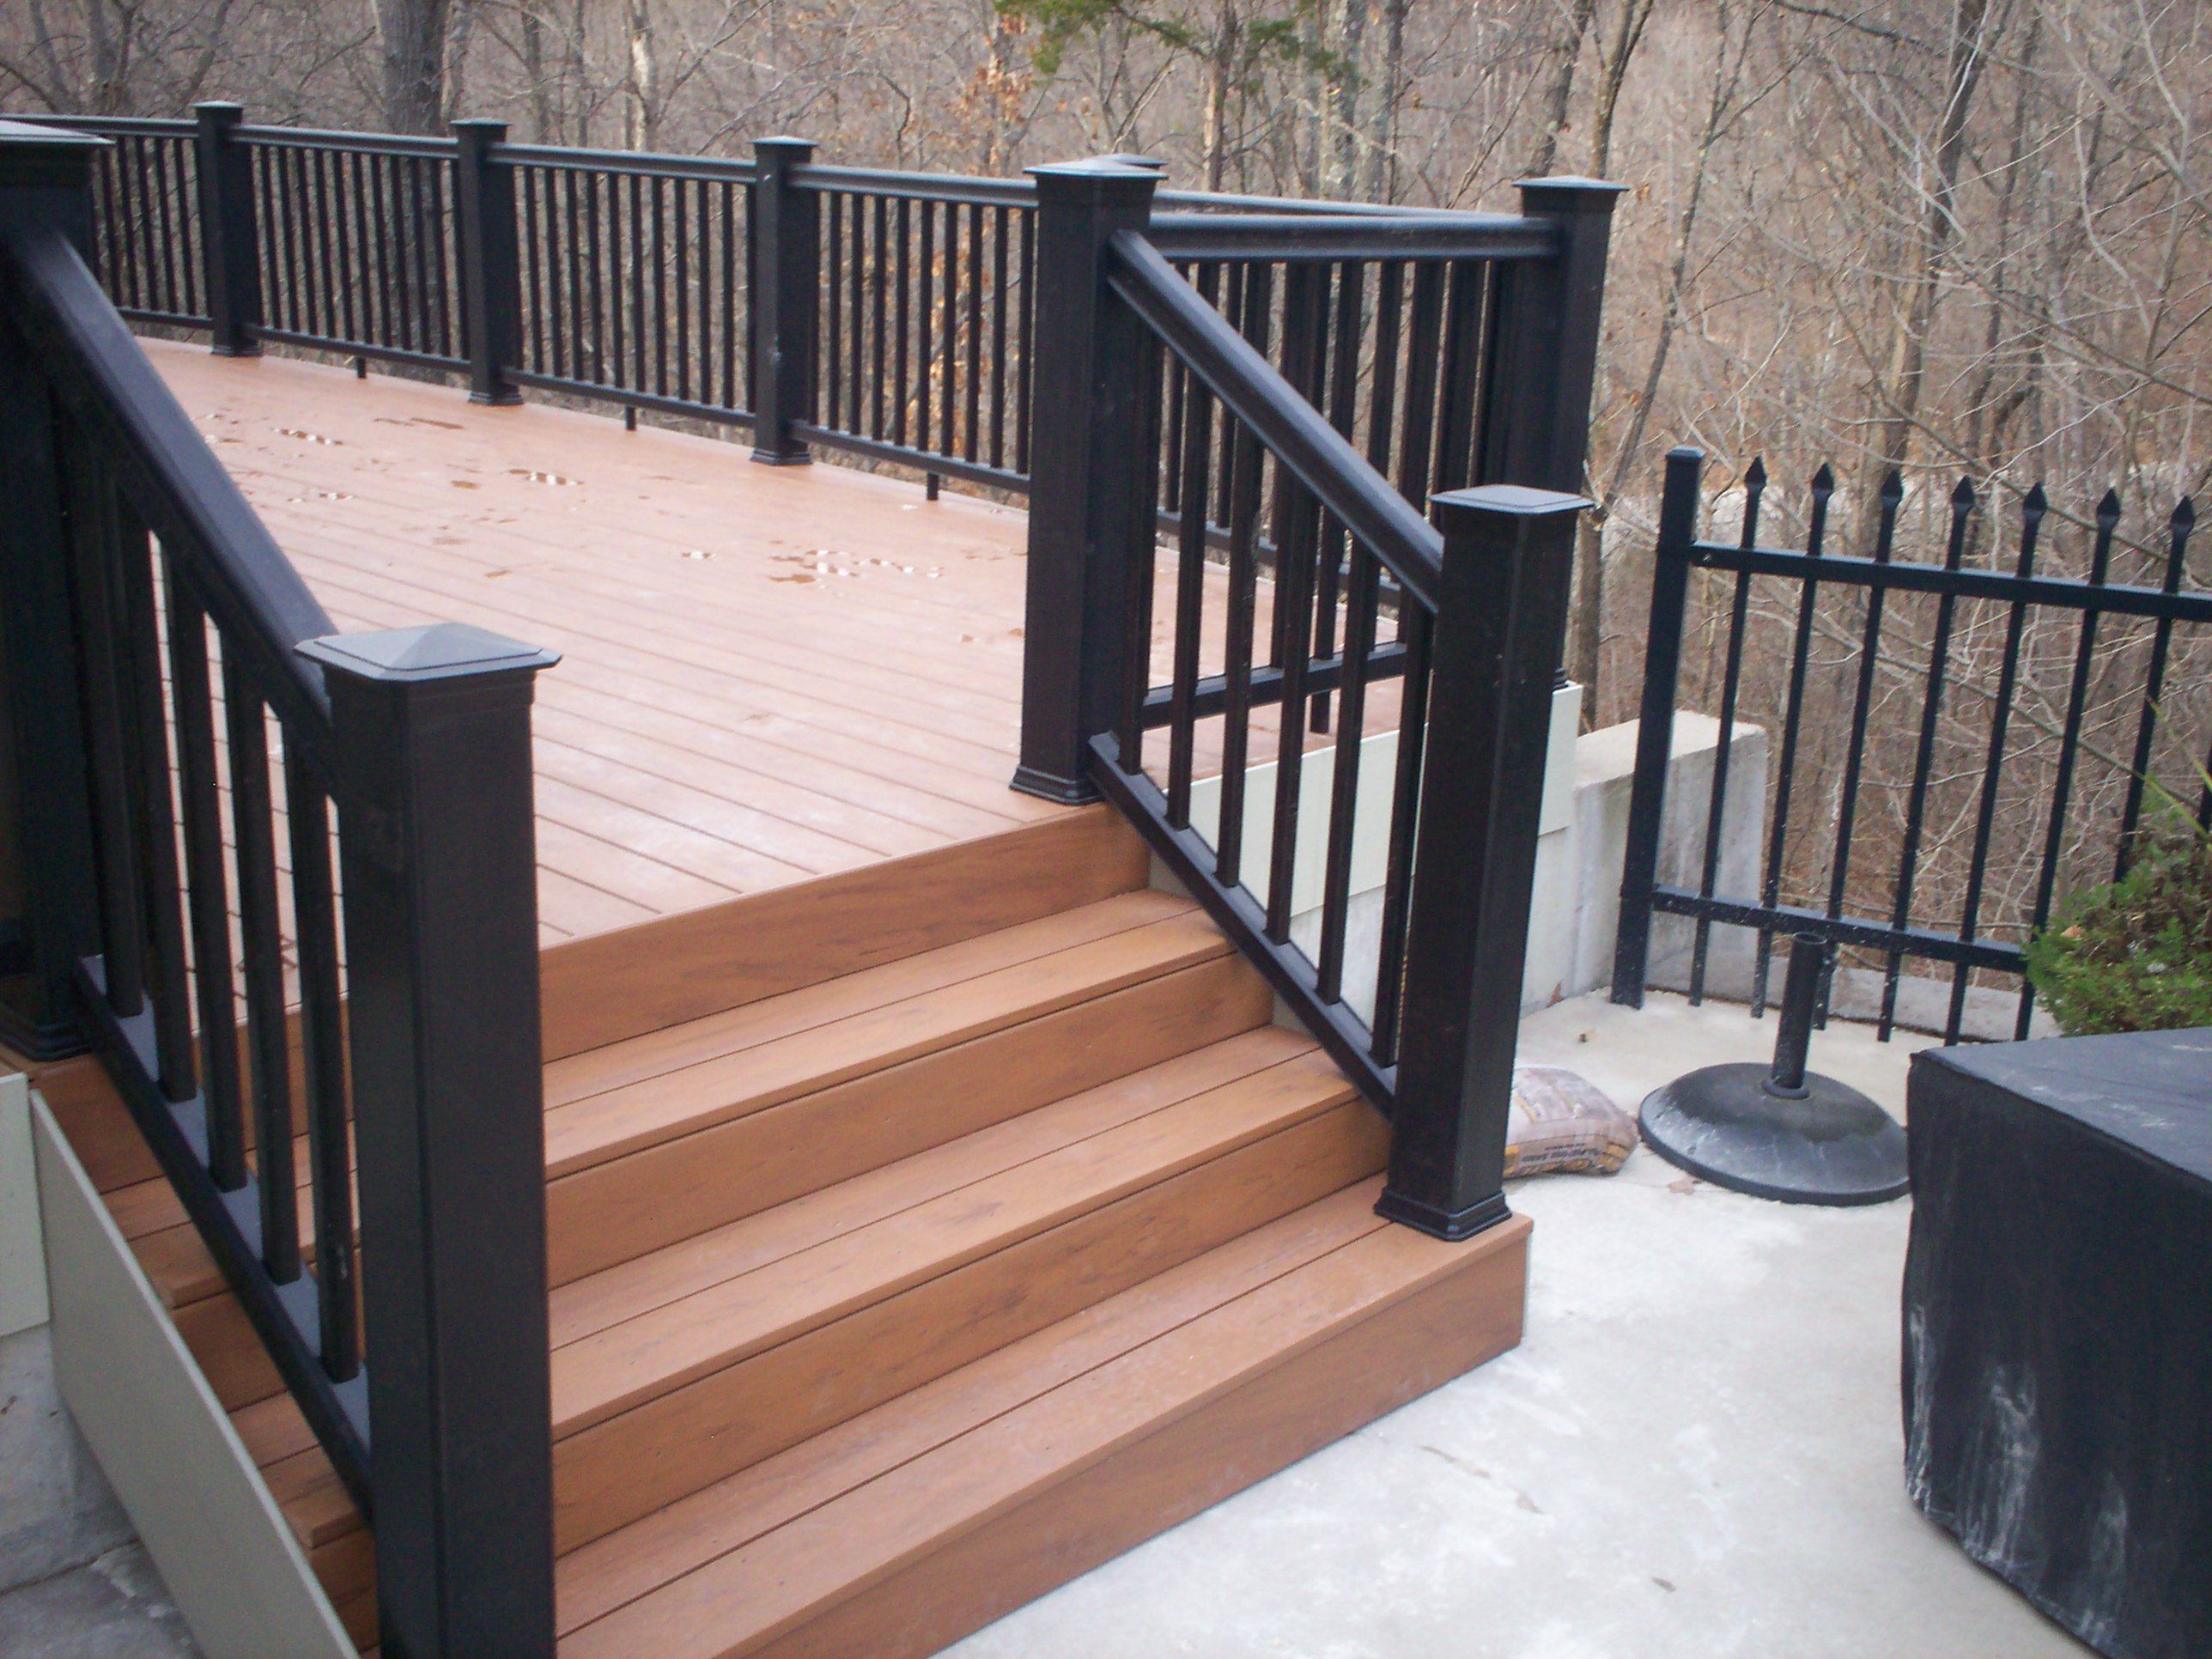 St. Louis Deck and Porch Contractors: Better building by design ...